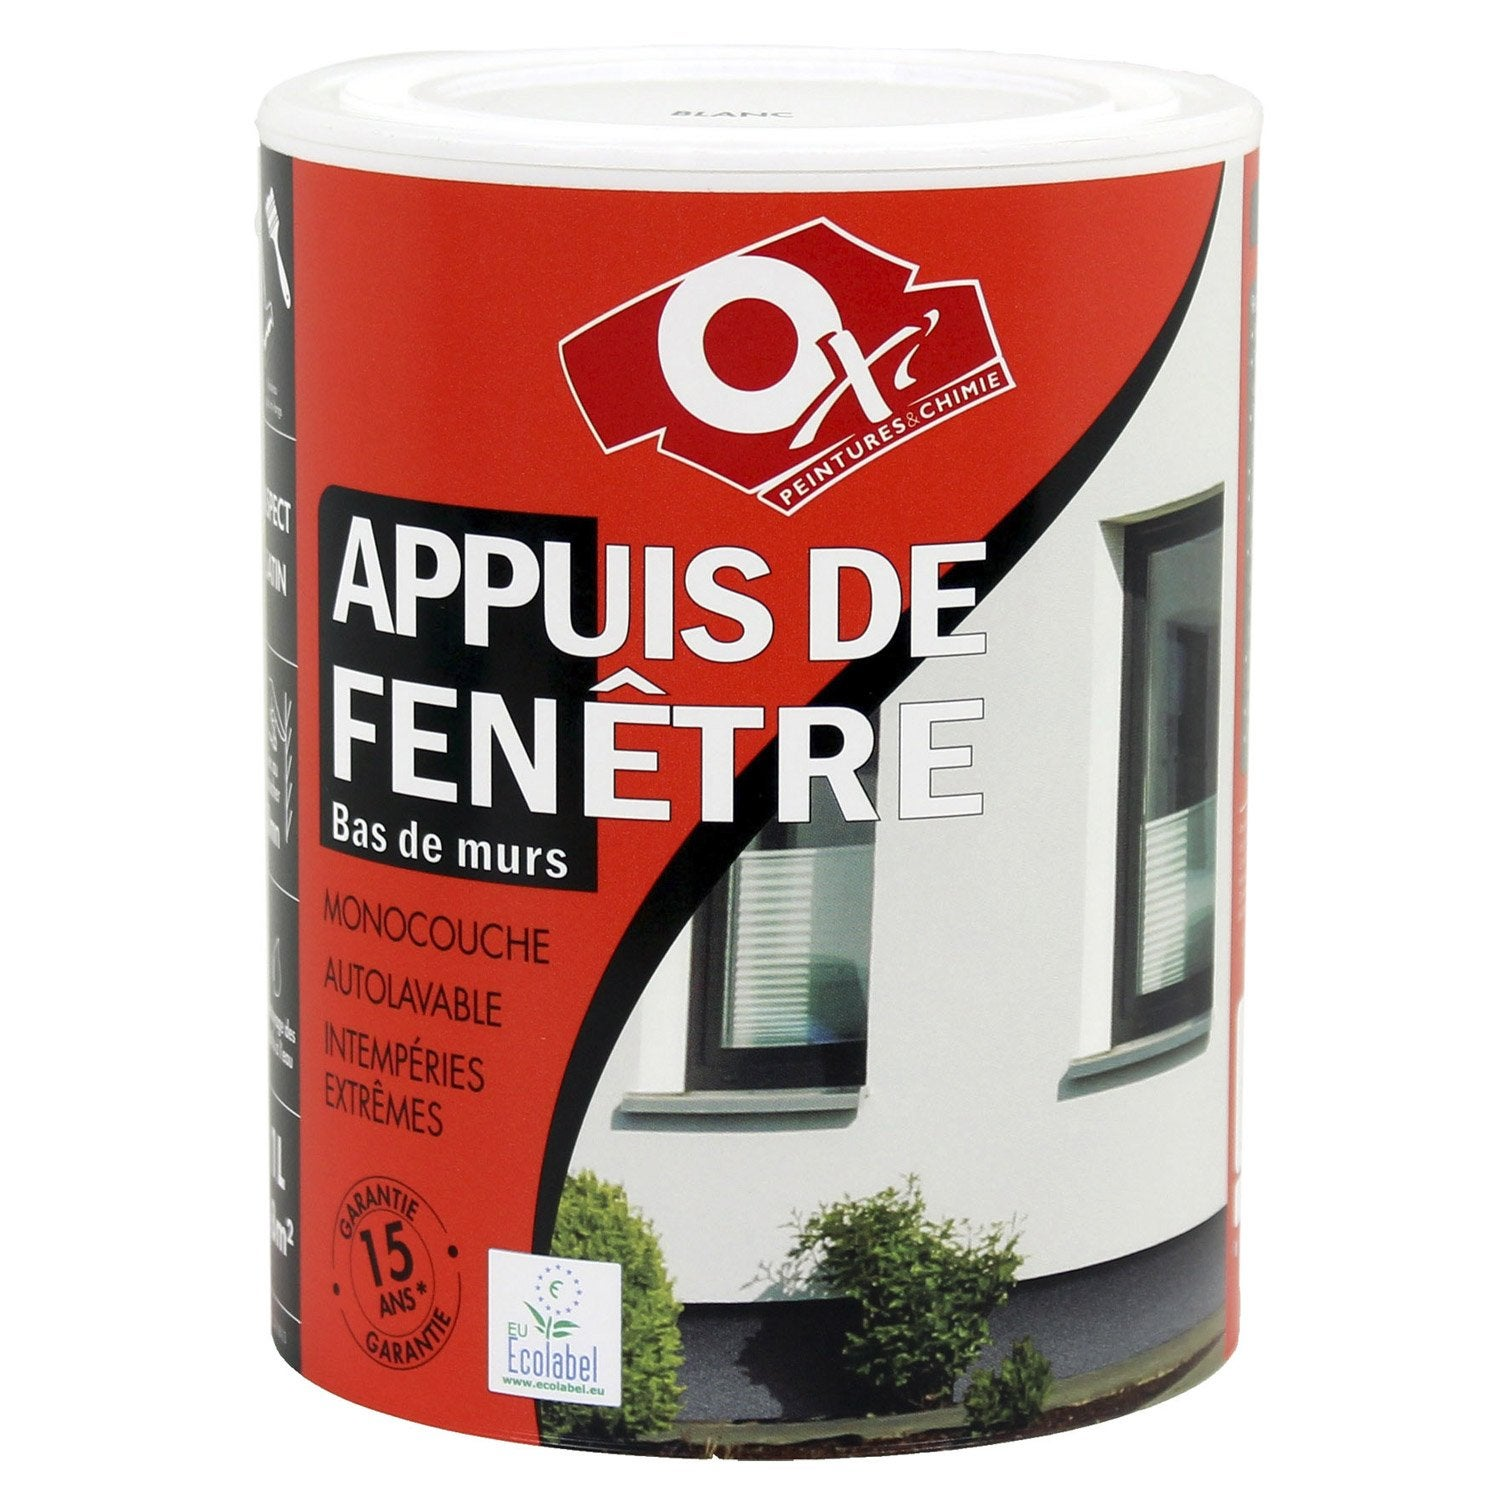 peinture appui de fen tre oxytol blanc 1 l leroy merlin. Black Bedroom Furniture Sets. Home Design Ideas